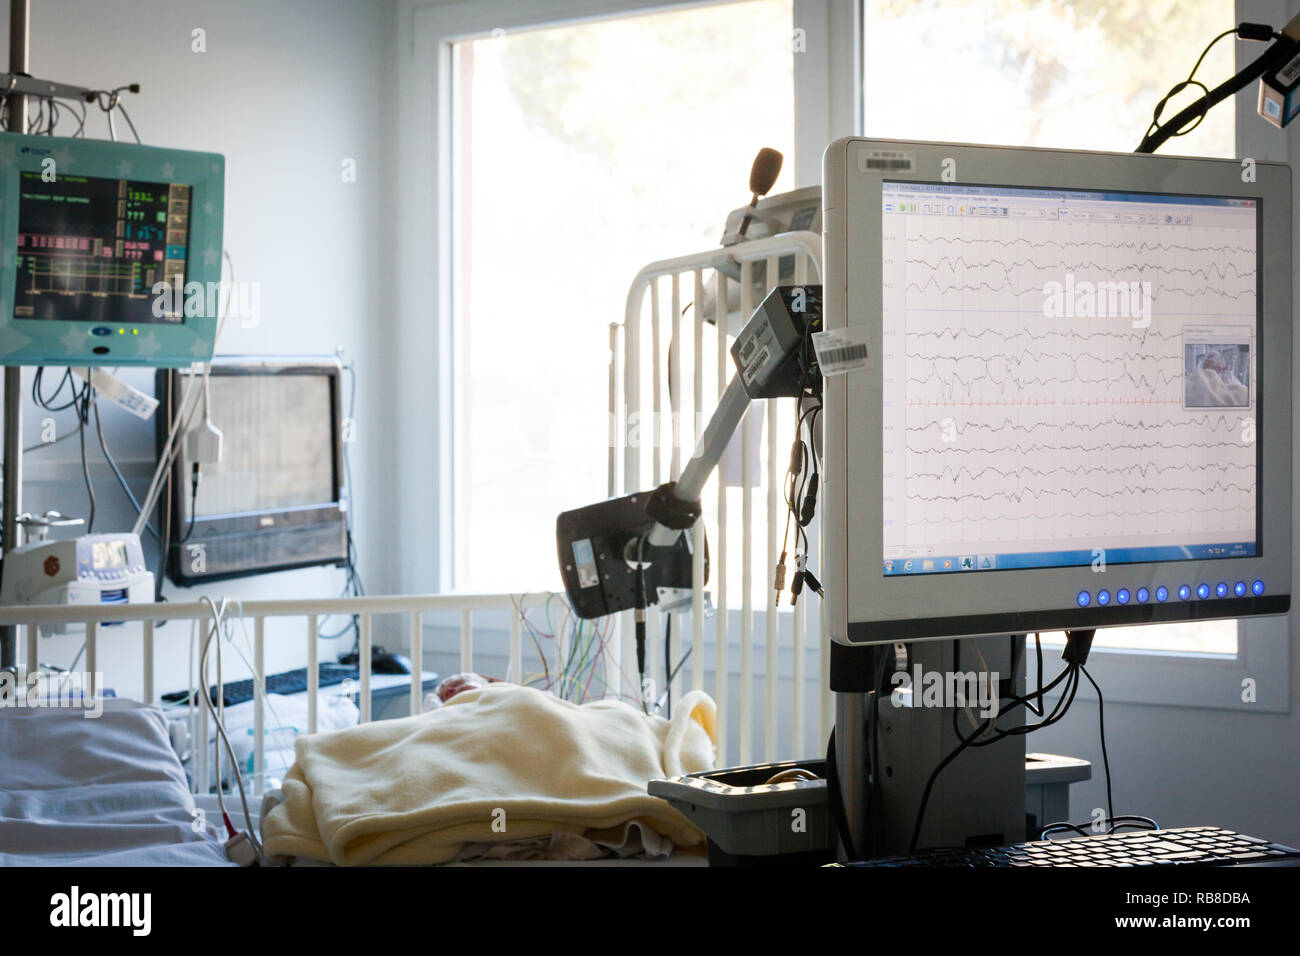 A premature baby is constantly watched with probes and sensors  in the neonatalogy department. - Stock Image